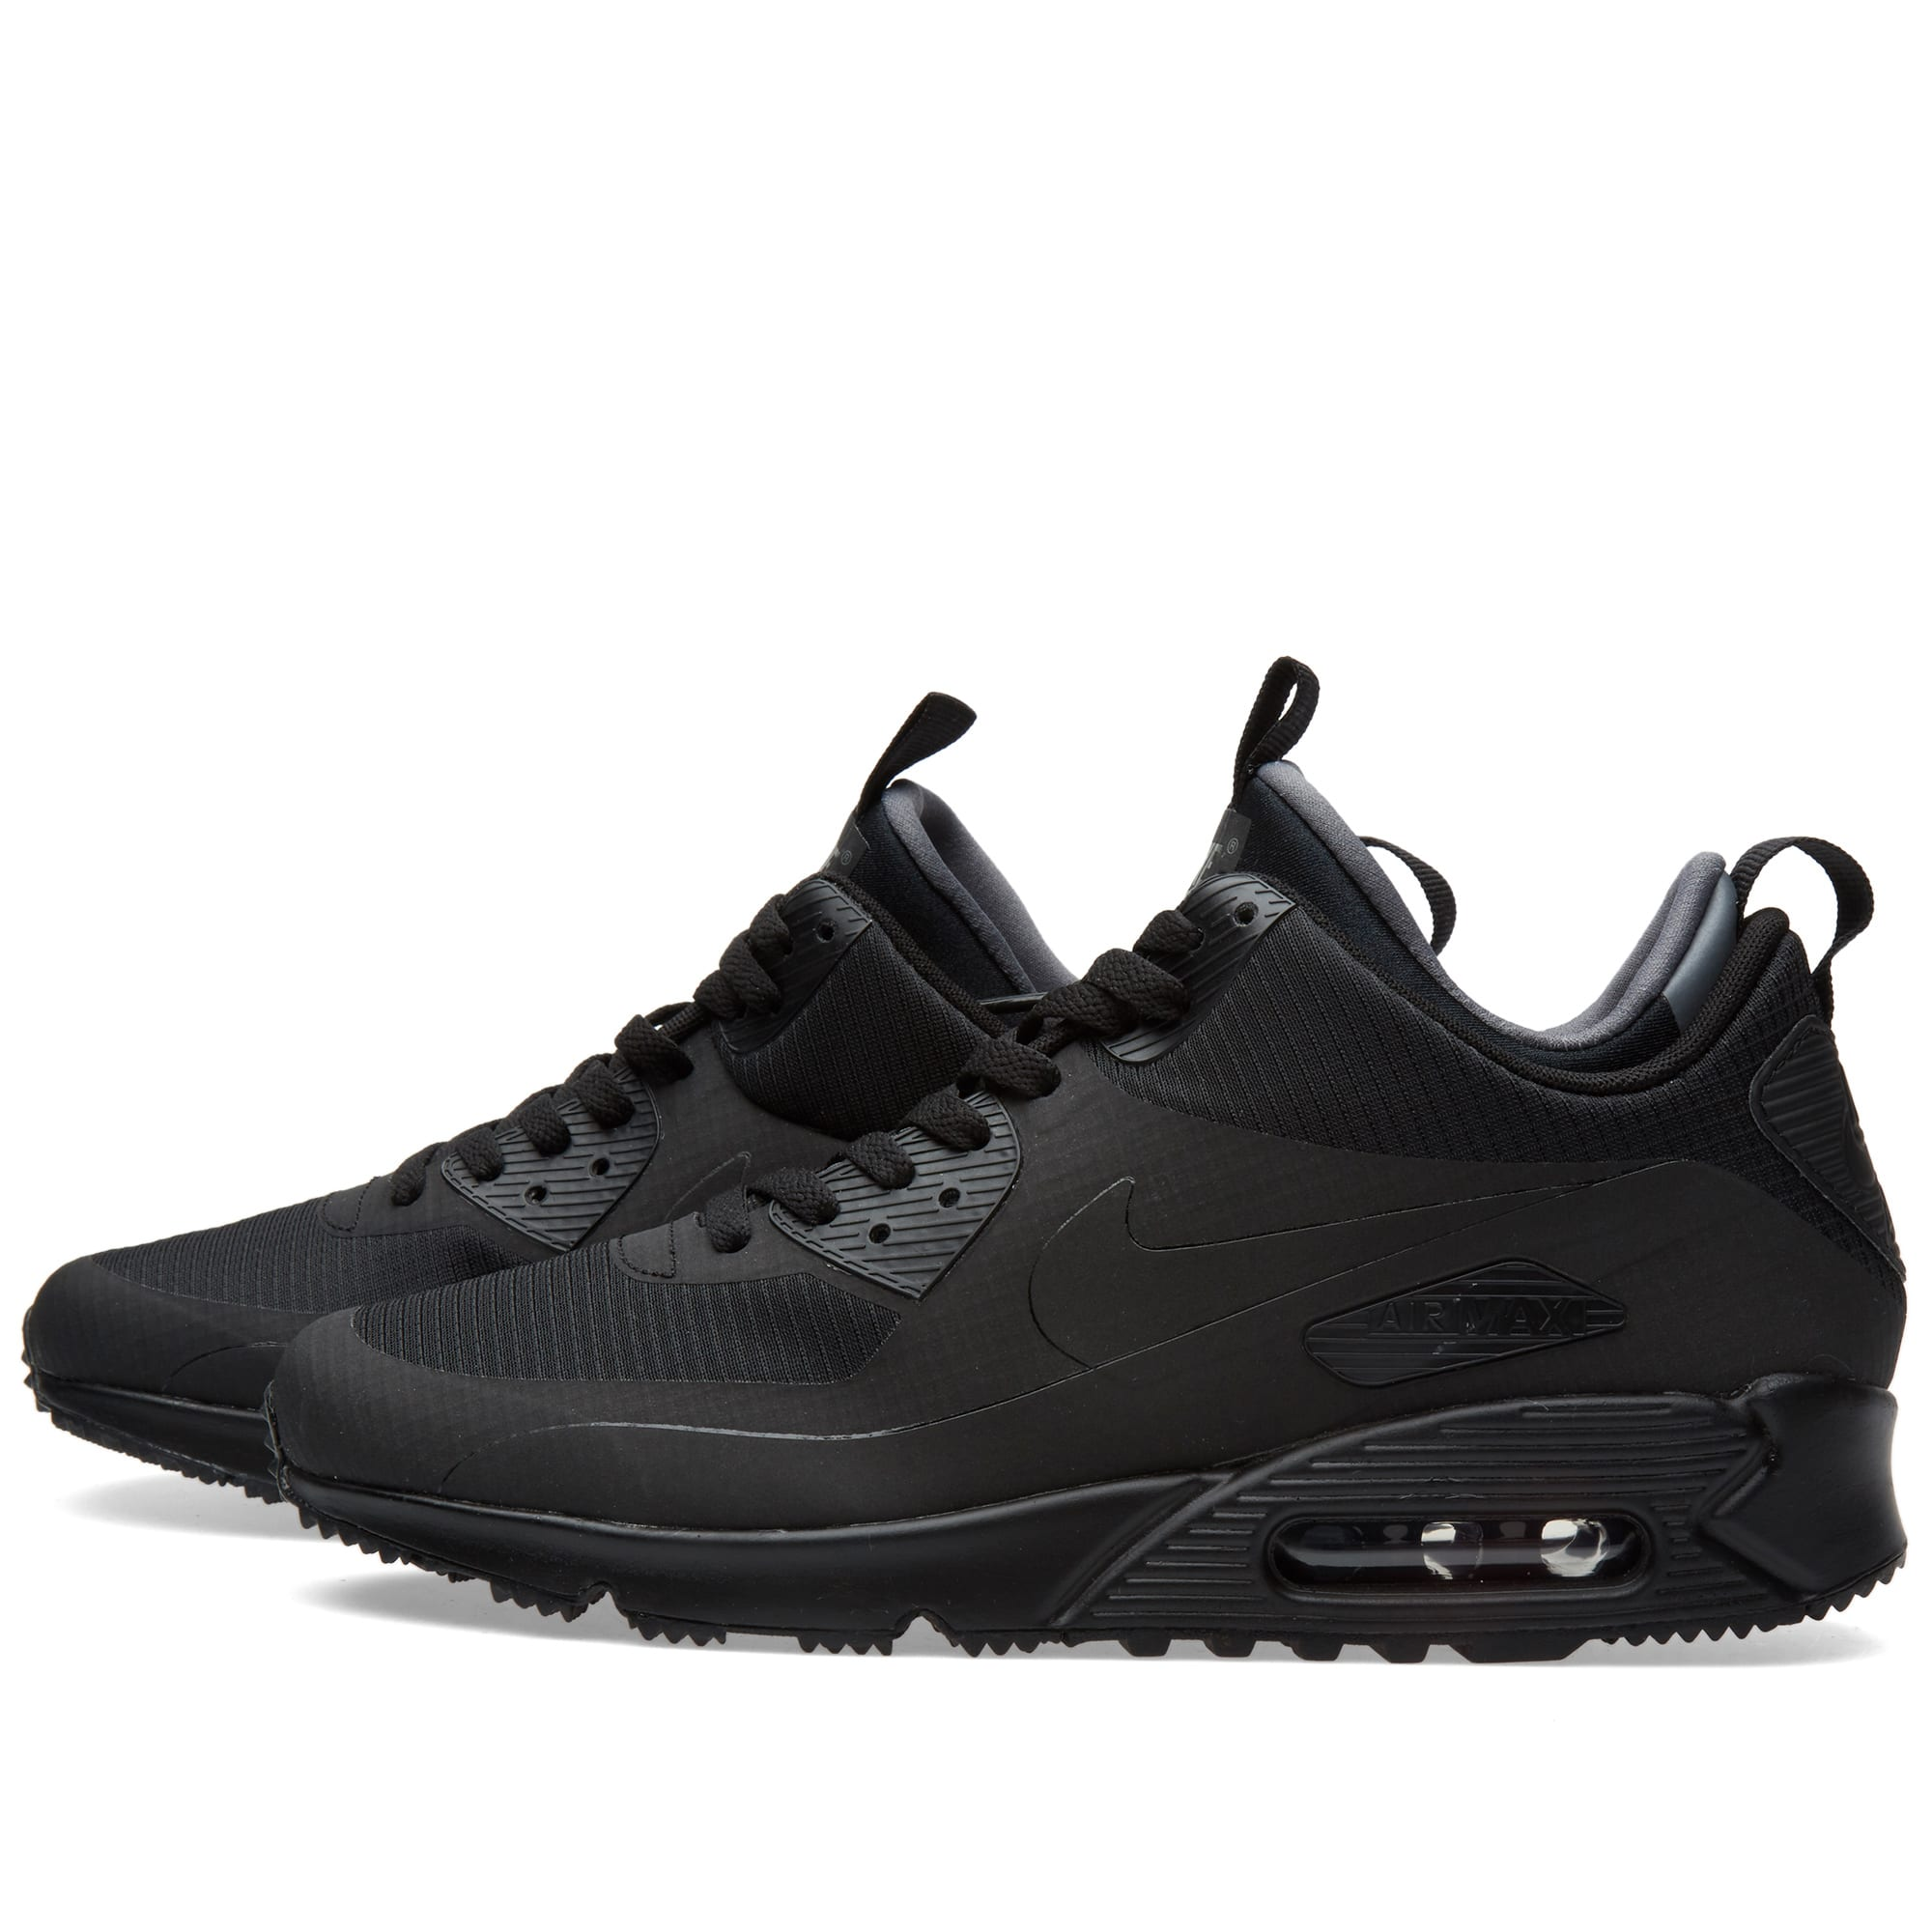 nike air max 90 mid winter black. Black Bedroom Furniture Sets. Home Design Ideas